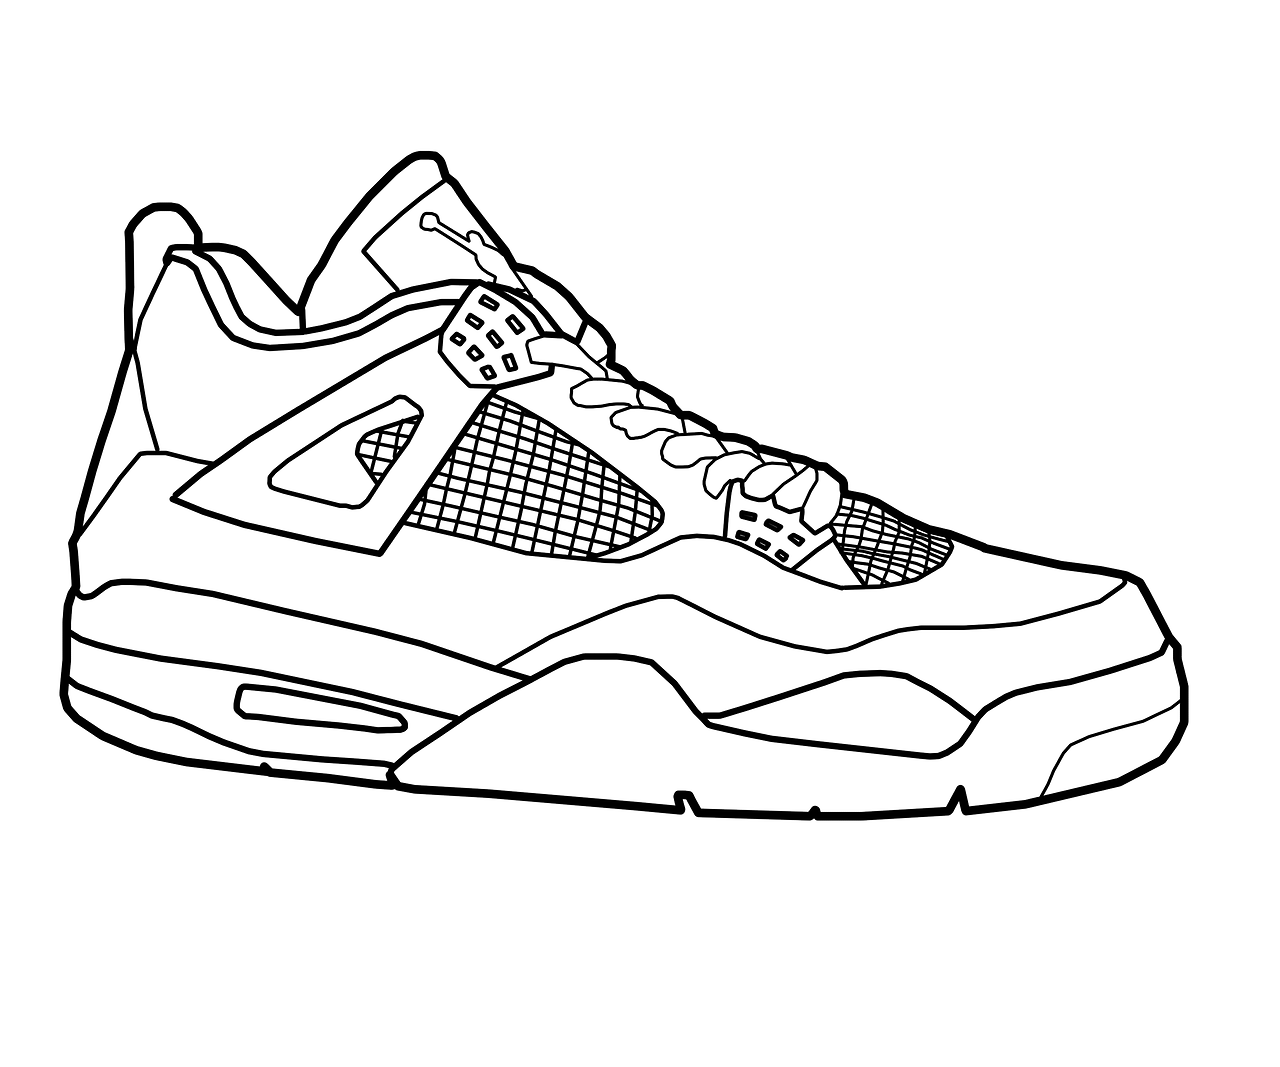 shoes to color basketball shoe coloring pages download and print for free shoes color to